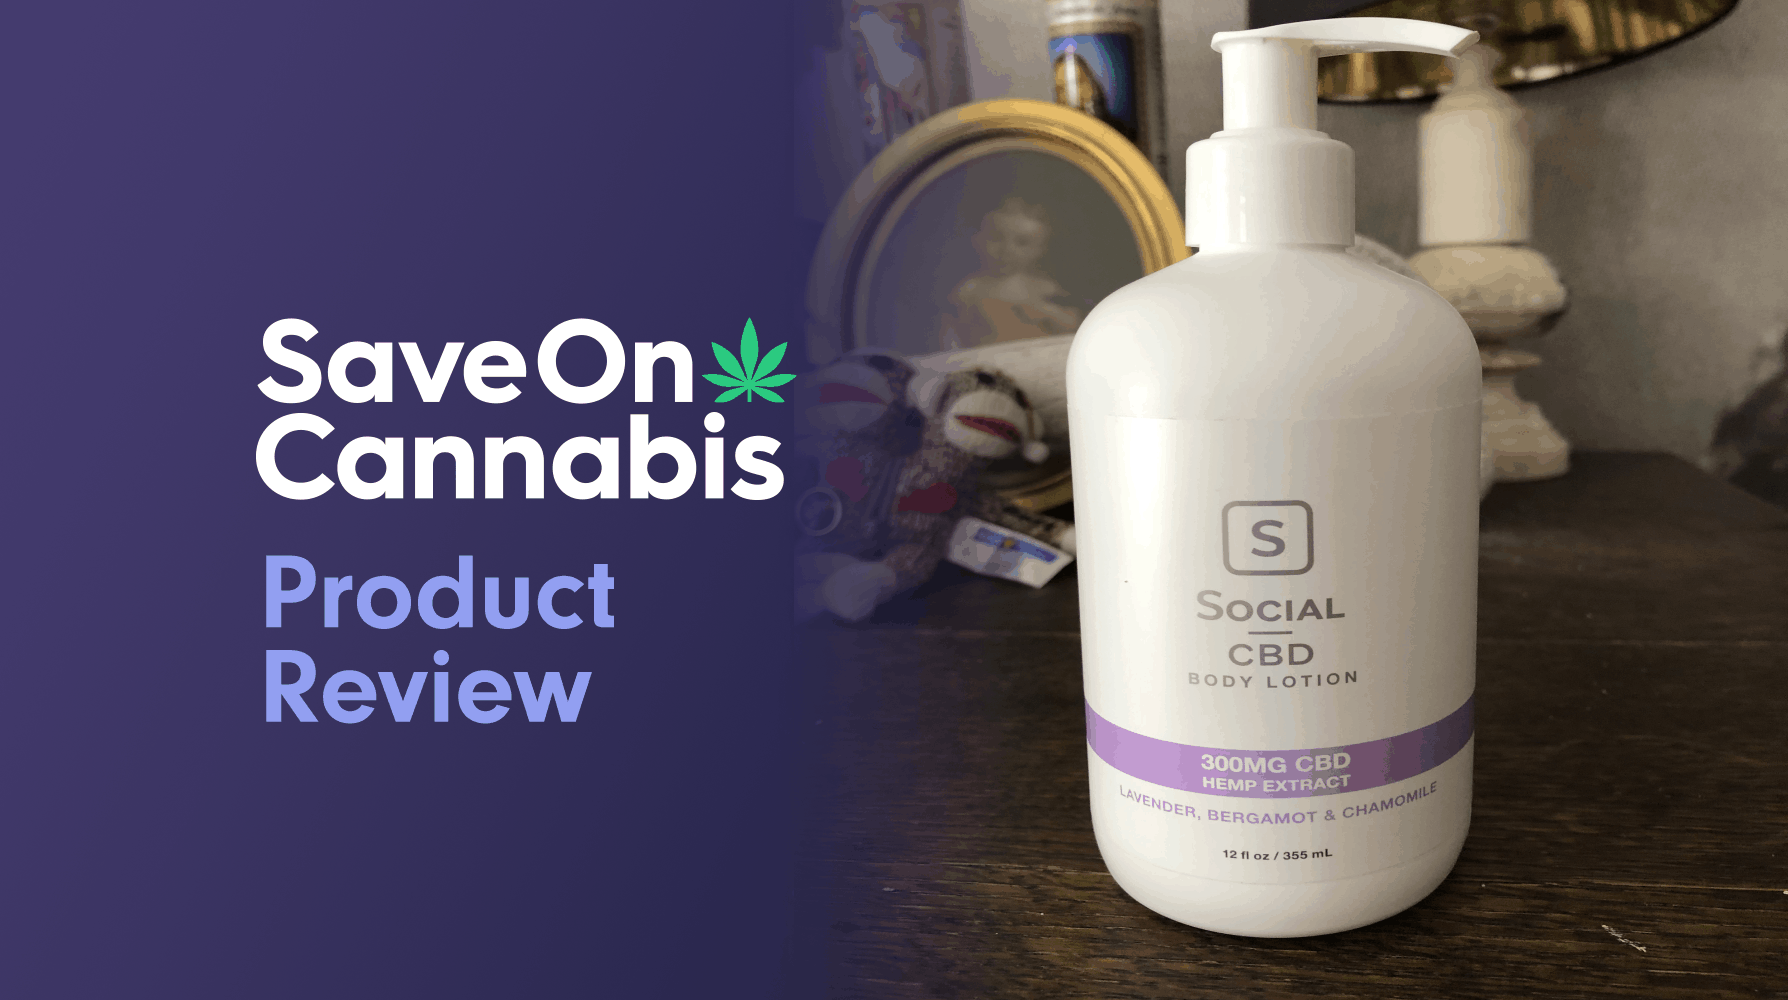 social cbd lotion save on cannabis website